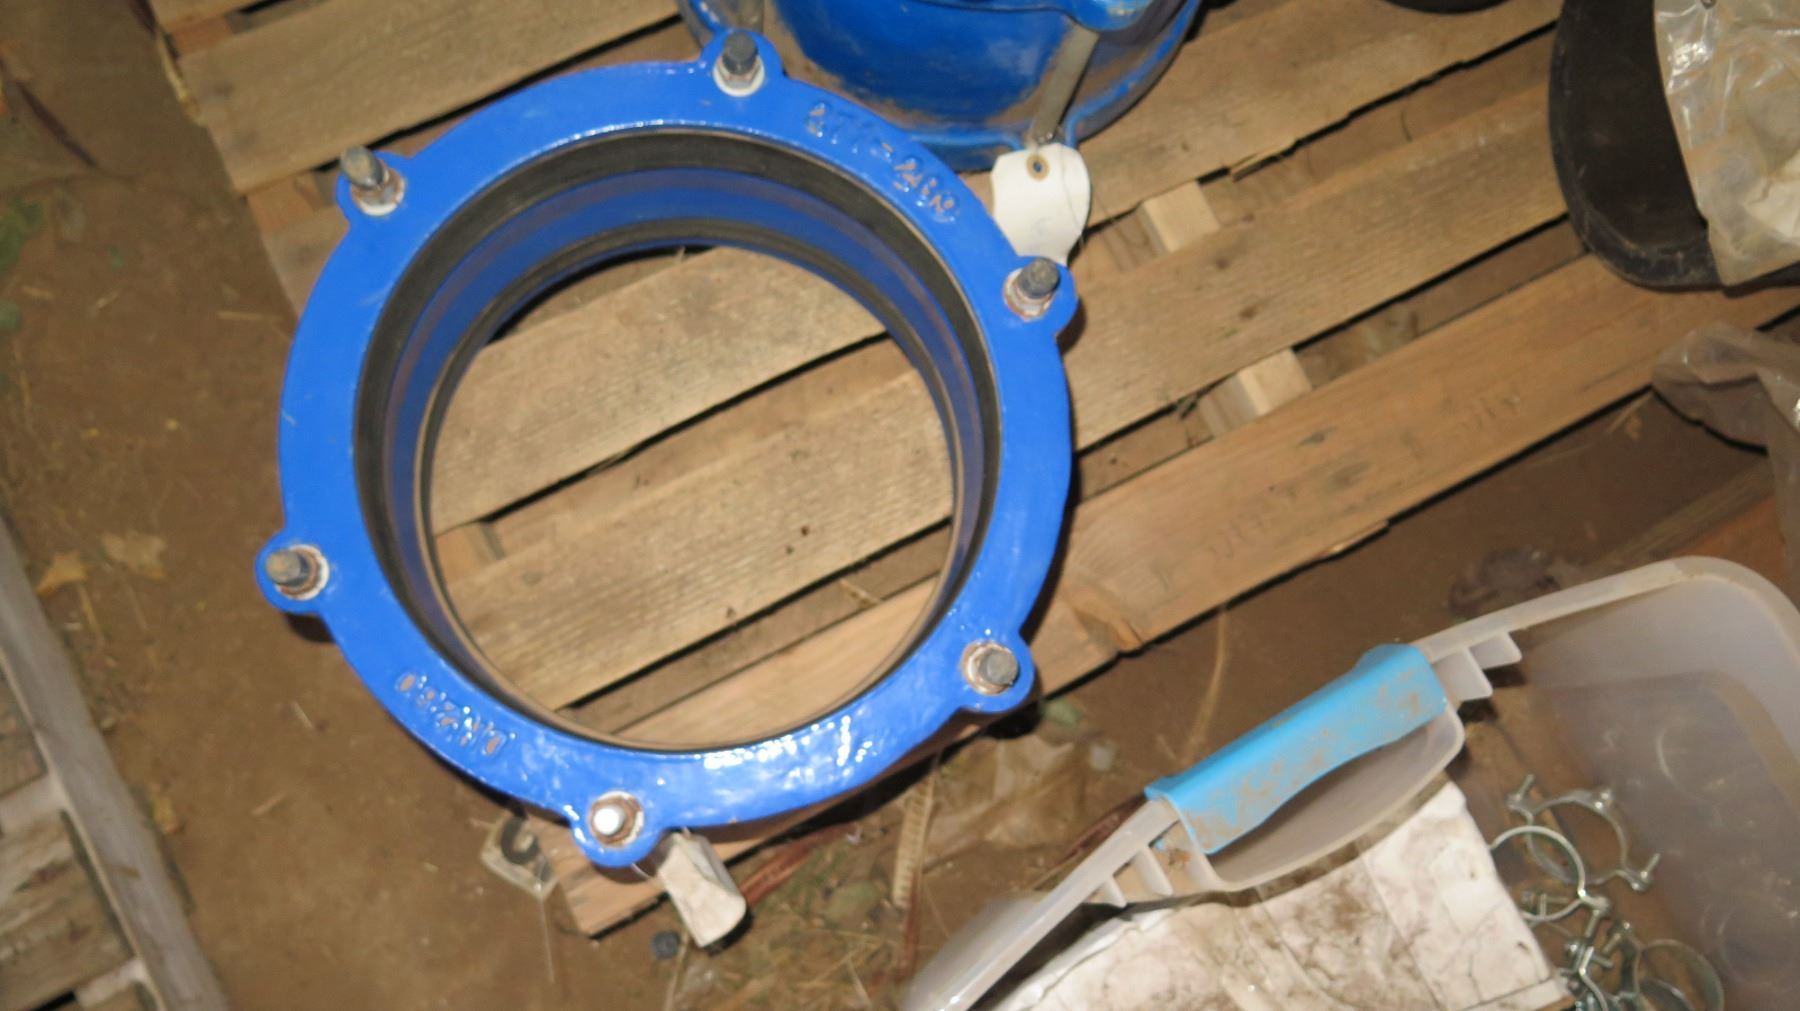 Qty 8 Large Connectors for PVC And HDPE pipe - Oahu Auctions